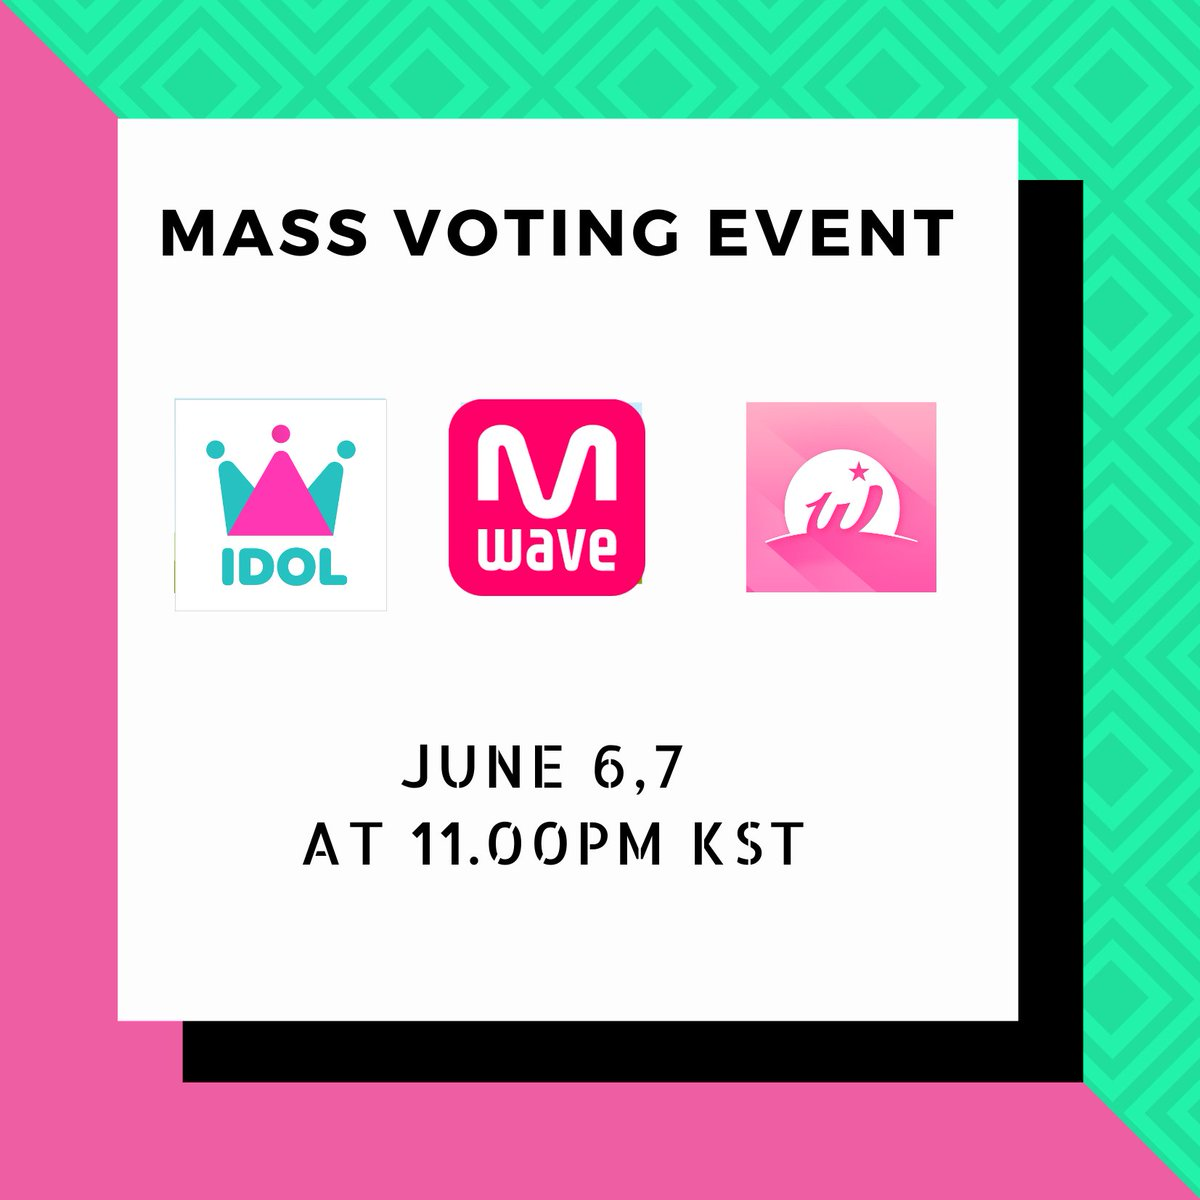 📣MASS VOTING EVENT 📣 We will be doing mass voting for Mcountdown (Mwave website/ Whosfan) and for Global pre-voting for Idolchamp. Voting schedule 🗓June 6,7 ⏰11:00PM KST Please RT and encourage more onces to join us. (@JYPETWICE )